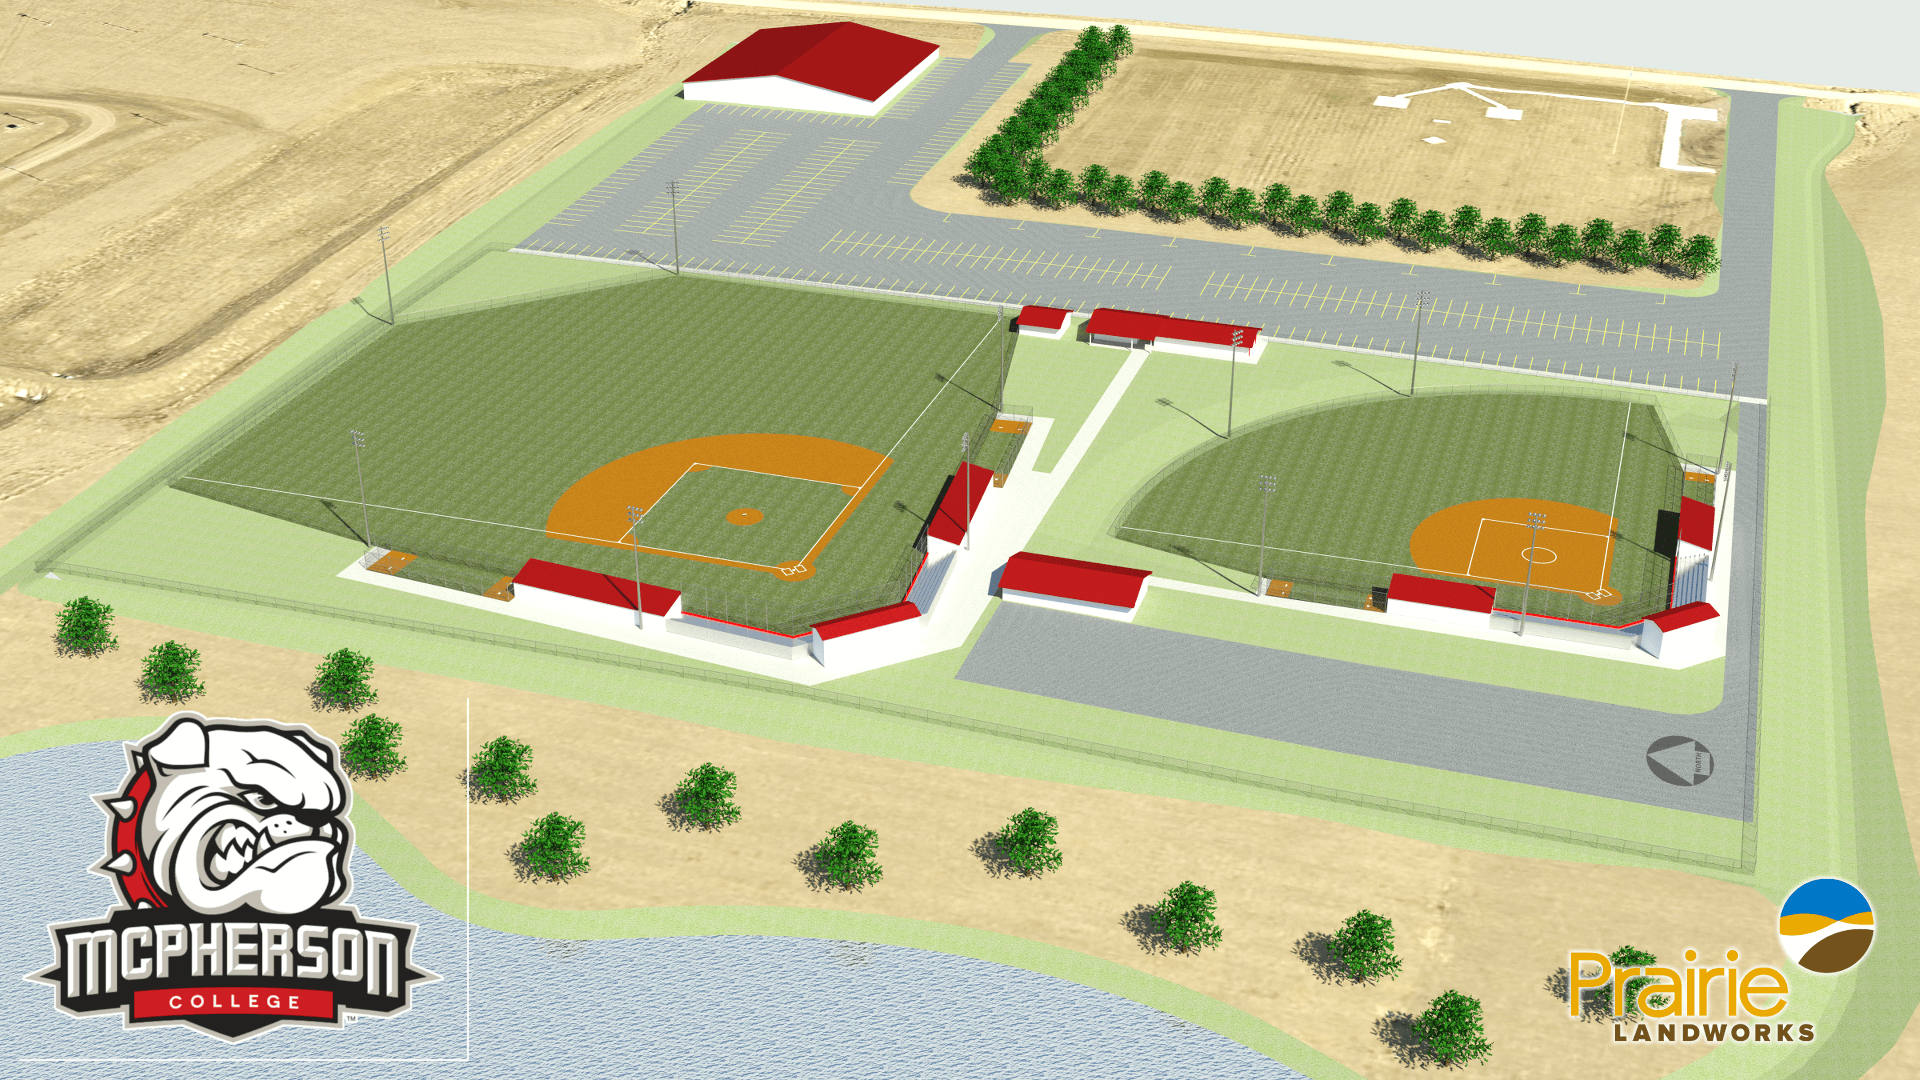 Planning comes to fruition with McPherson College ball fields